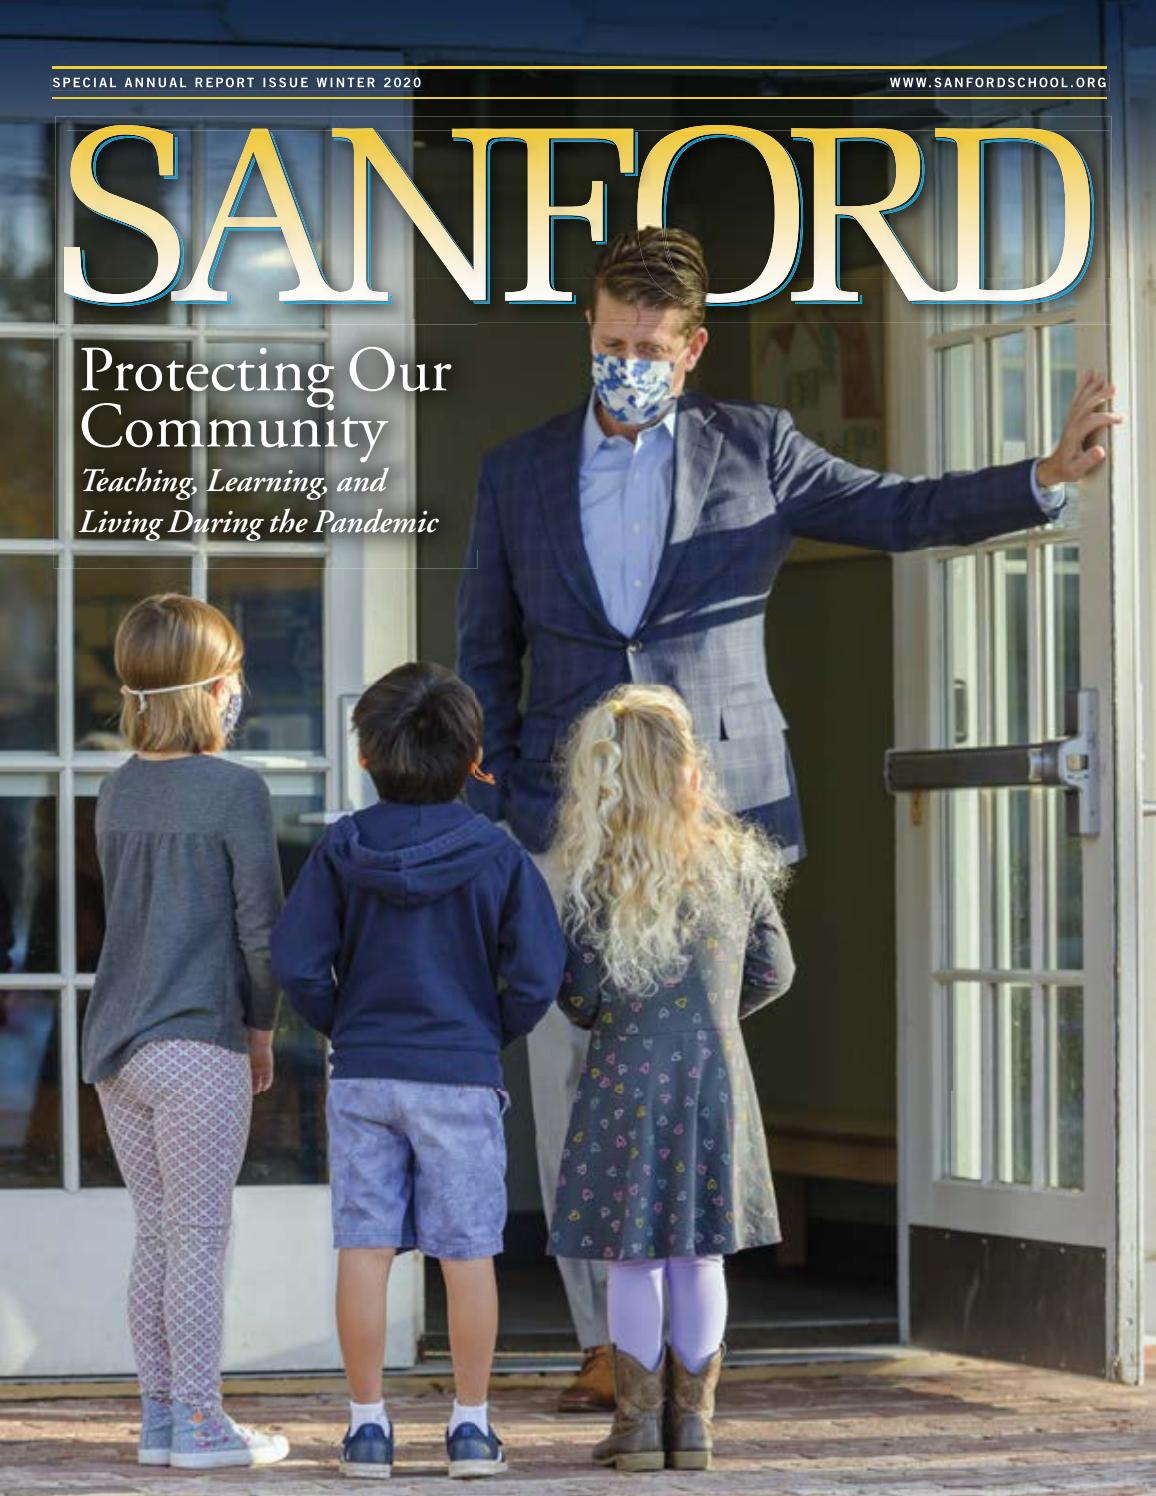 Sanford Magazine Winter 2020 By Sanford School Issuu